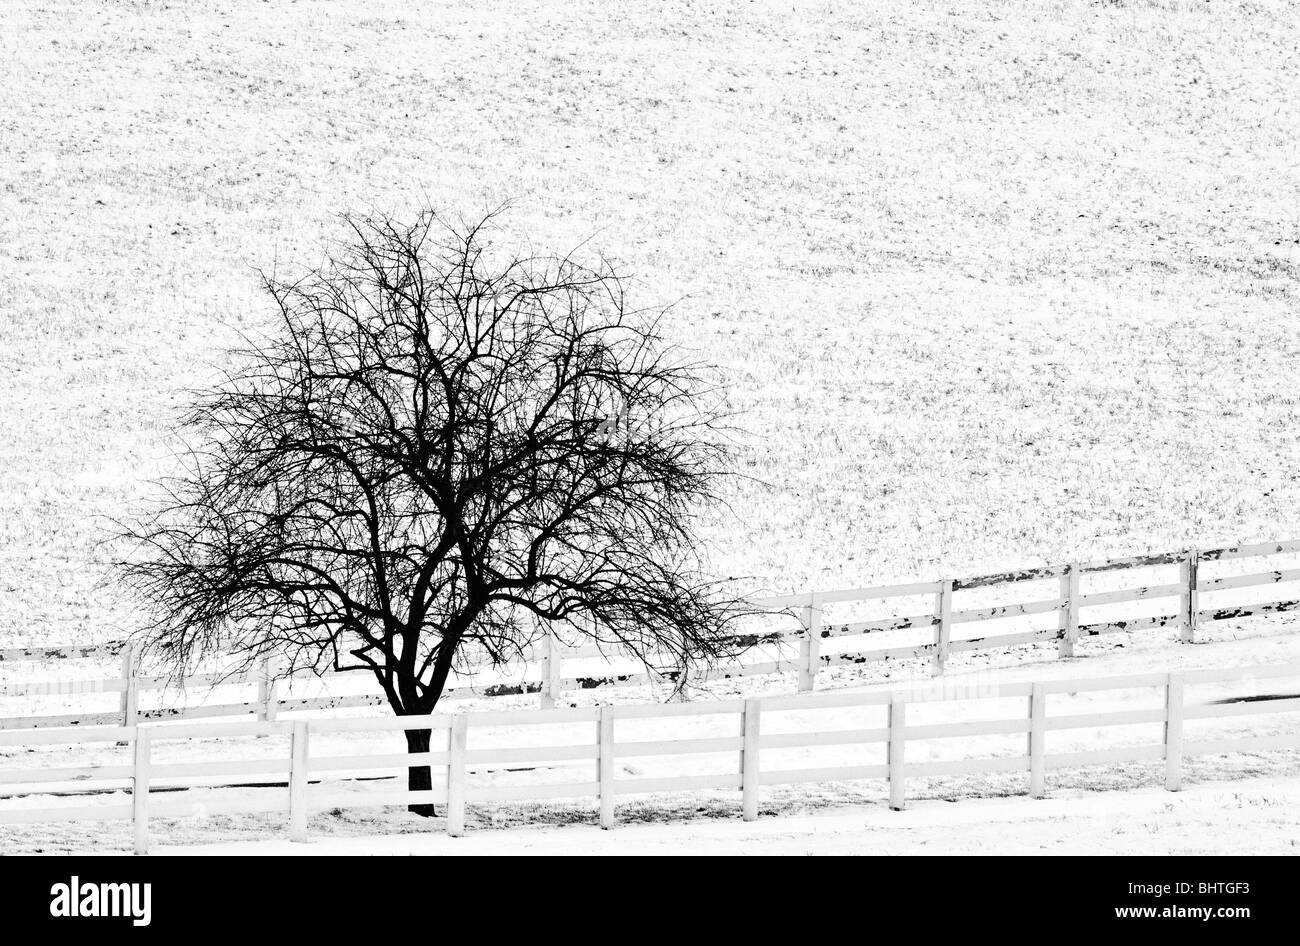 Black and White Photograph of Redbud Tree in Winter Snow Beside Fence in Fayette County, Kentucky - Stock Image